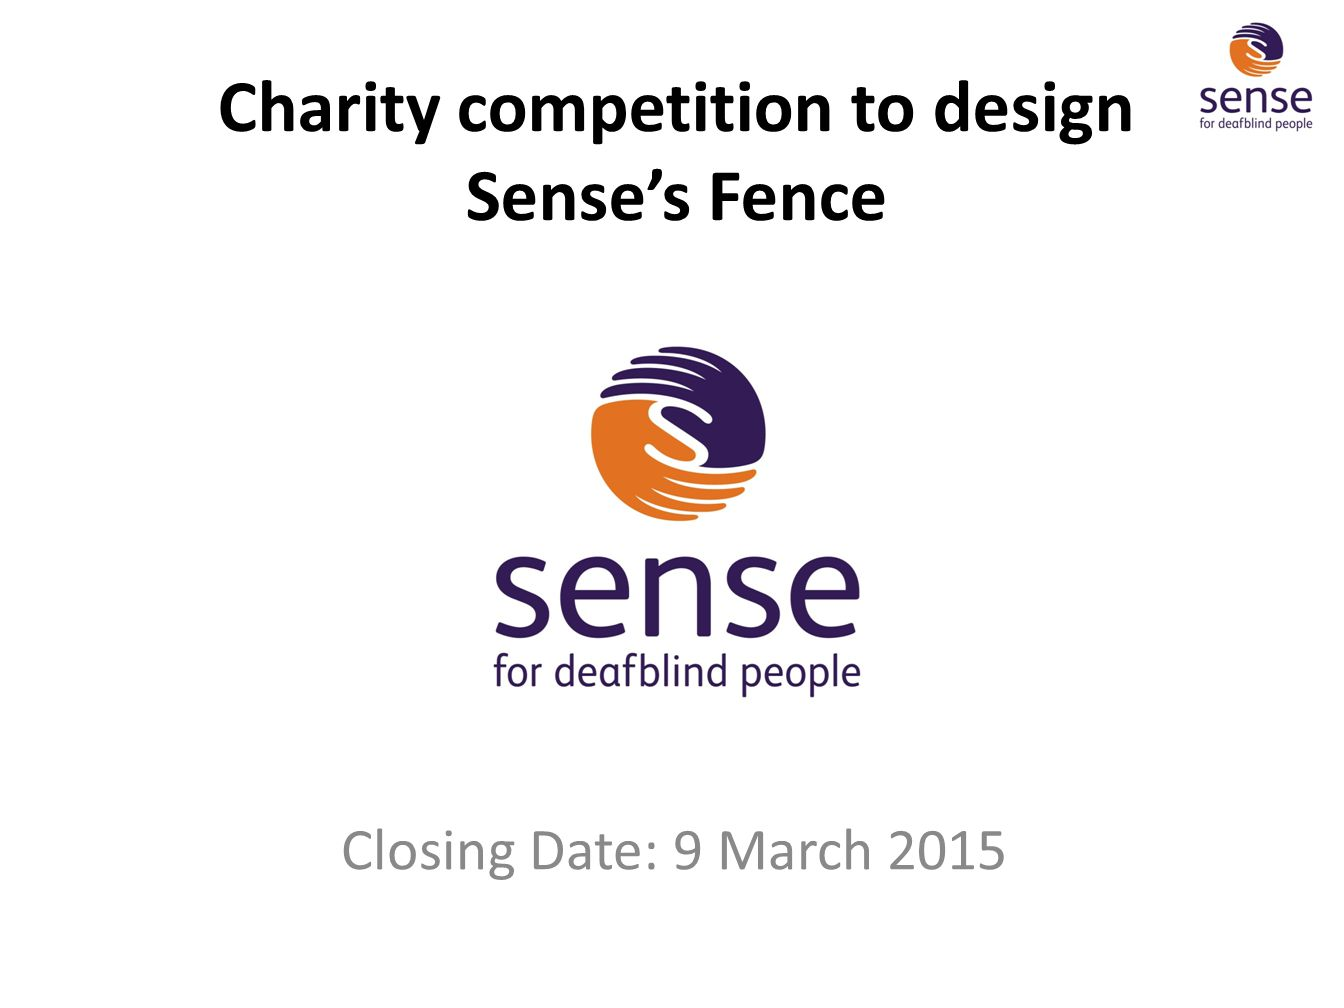 Charity competition to design Sense's Fence